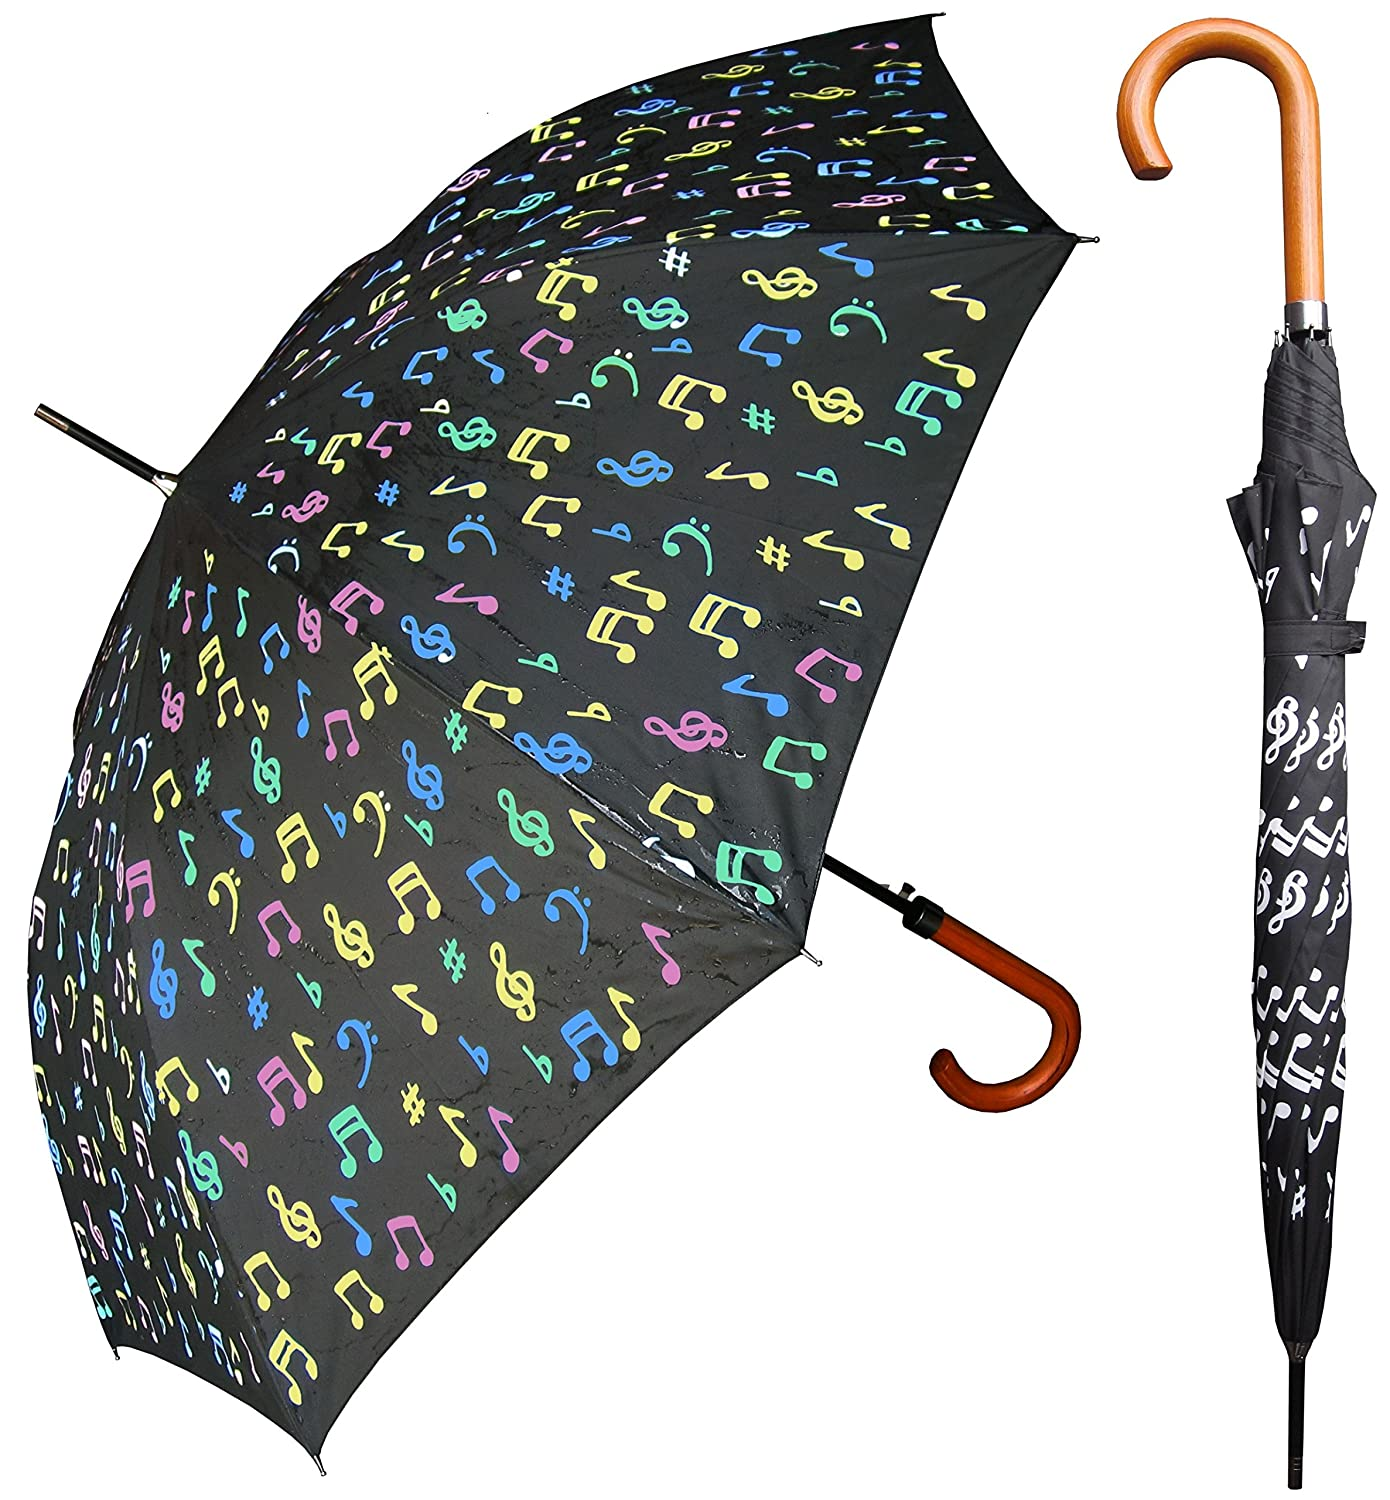 RainStoppers Color Changing Umbrella - 48 Inches (Music Notes) high-quality